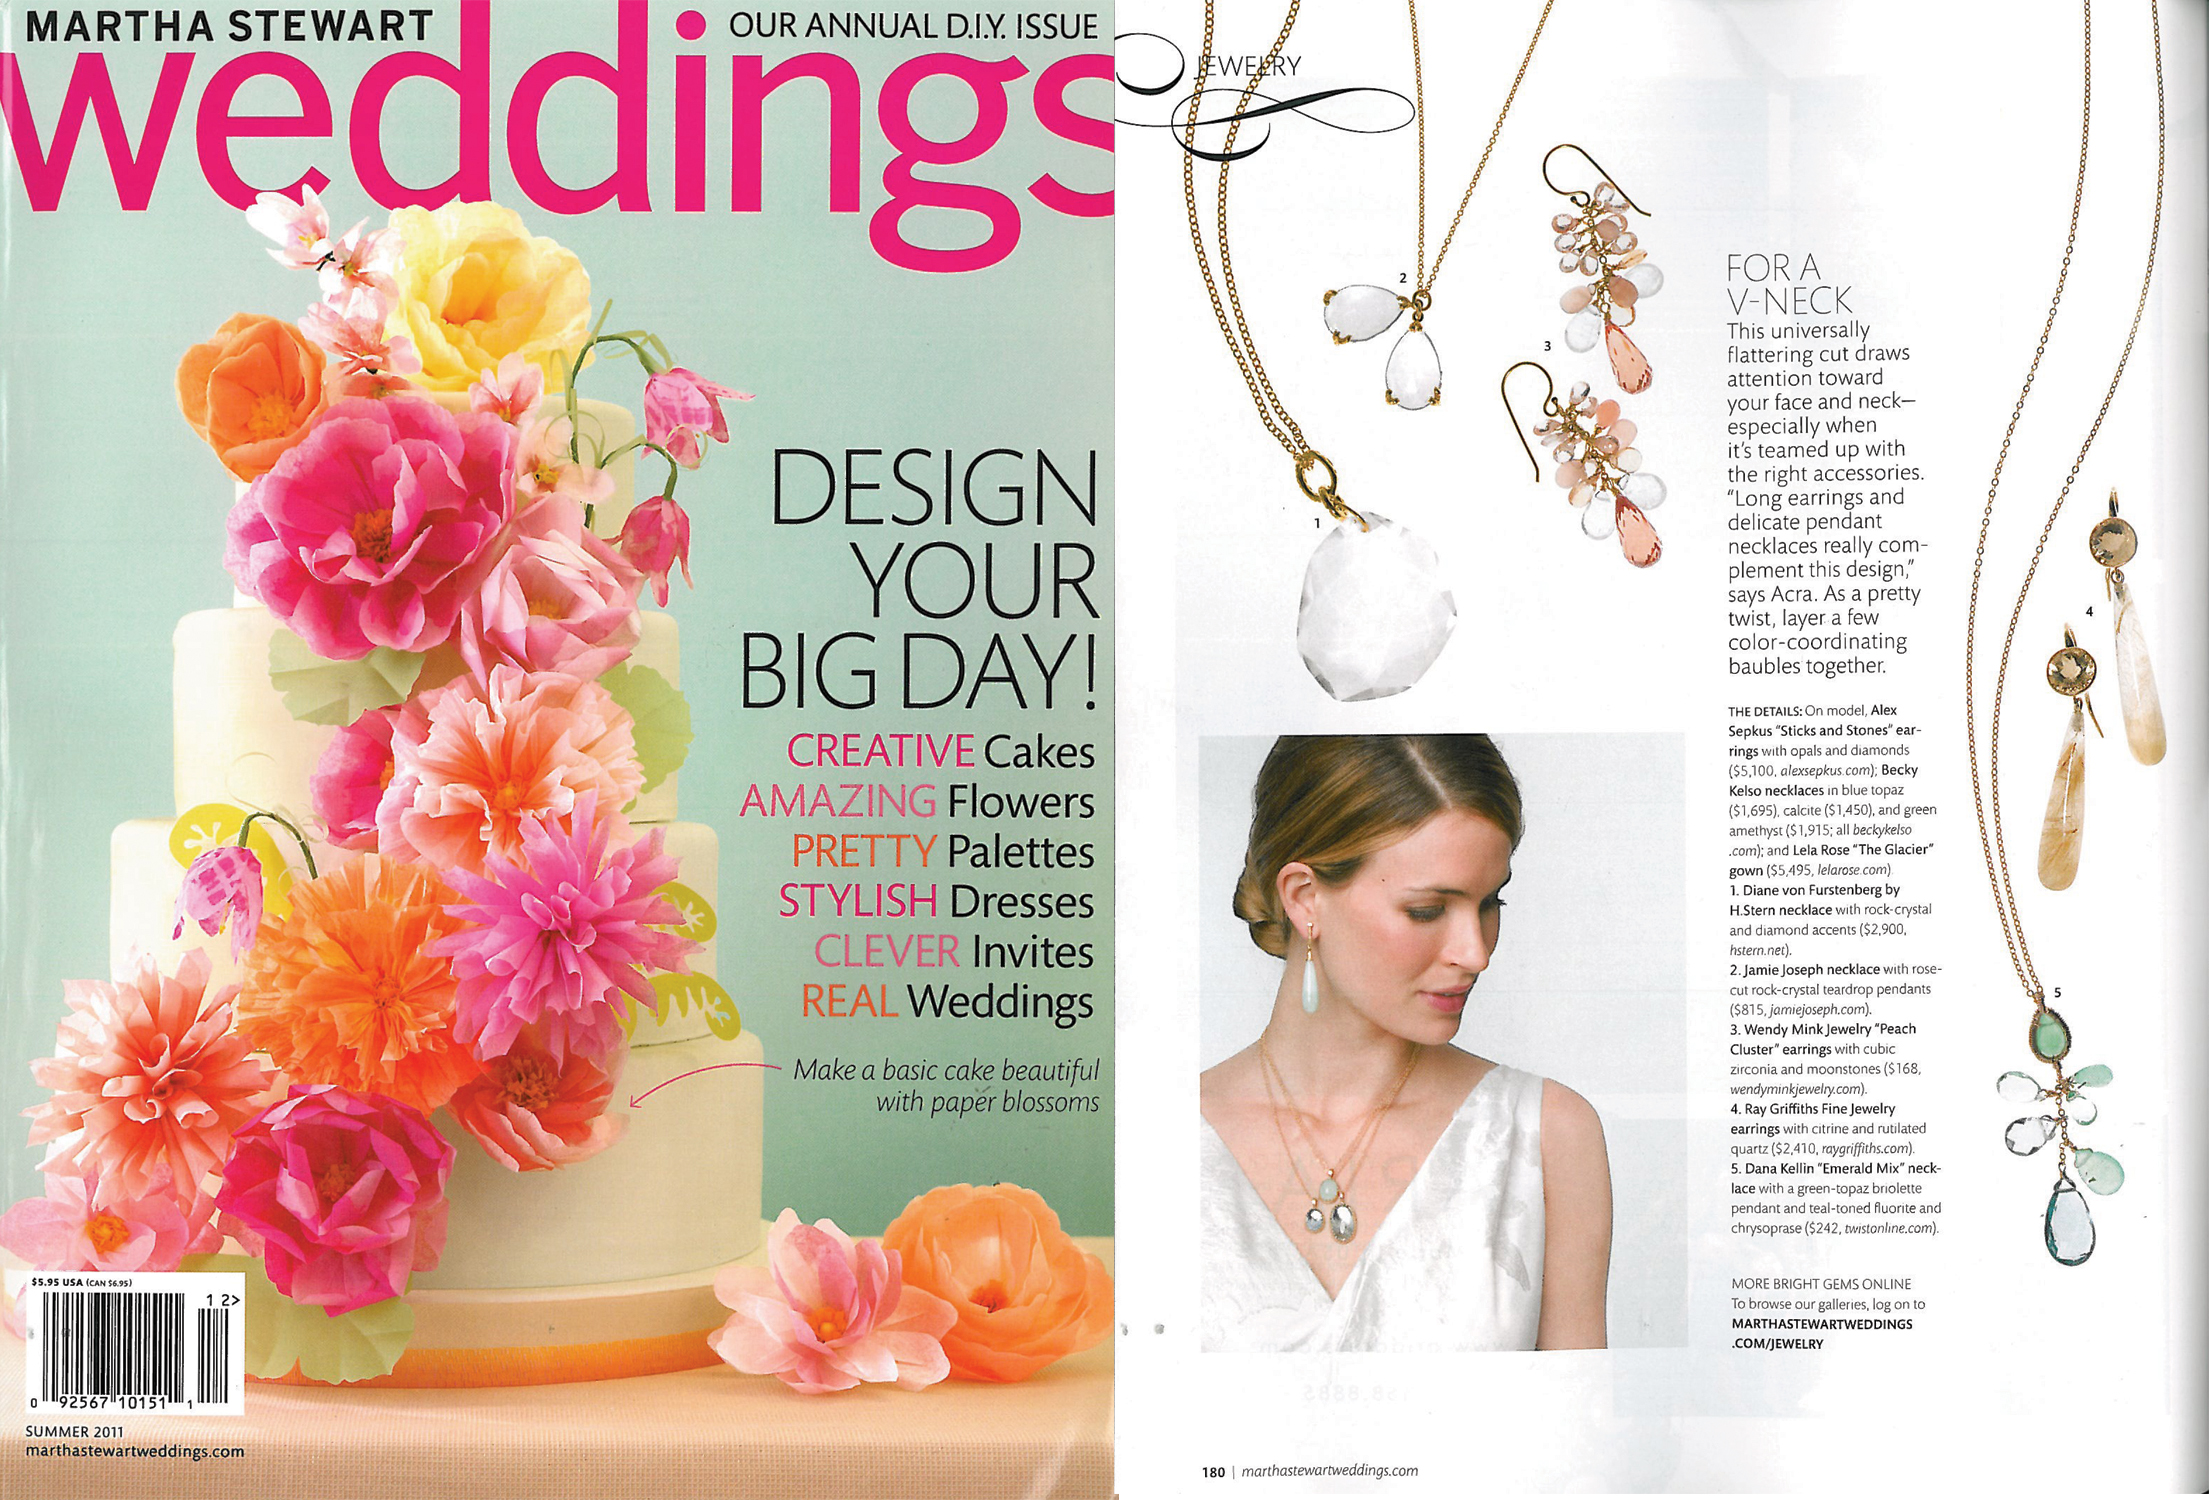 Martha Stewart Weddings: Ray Griffiths Fine Jewelry